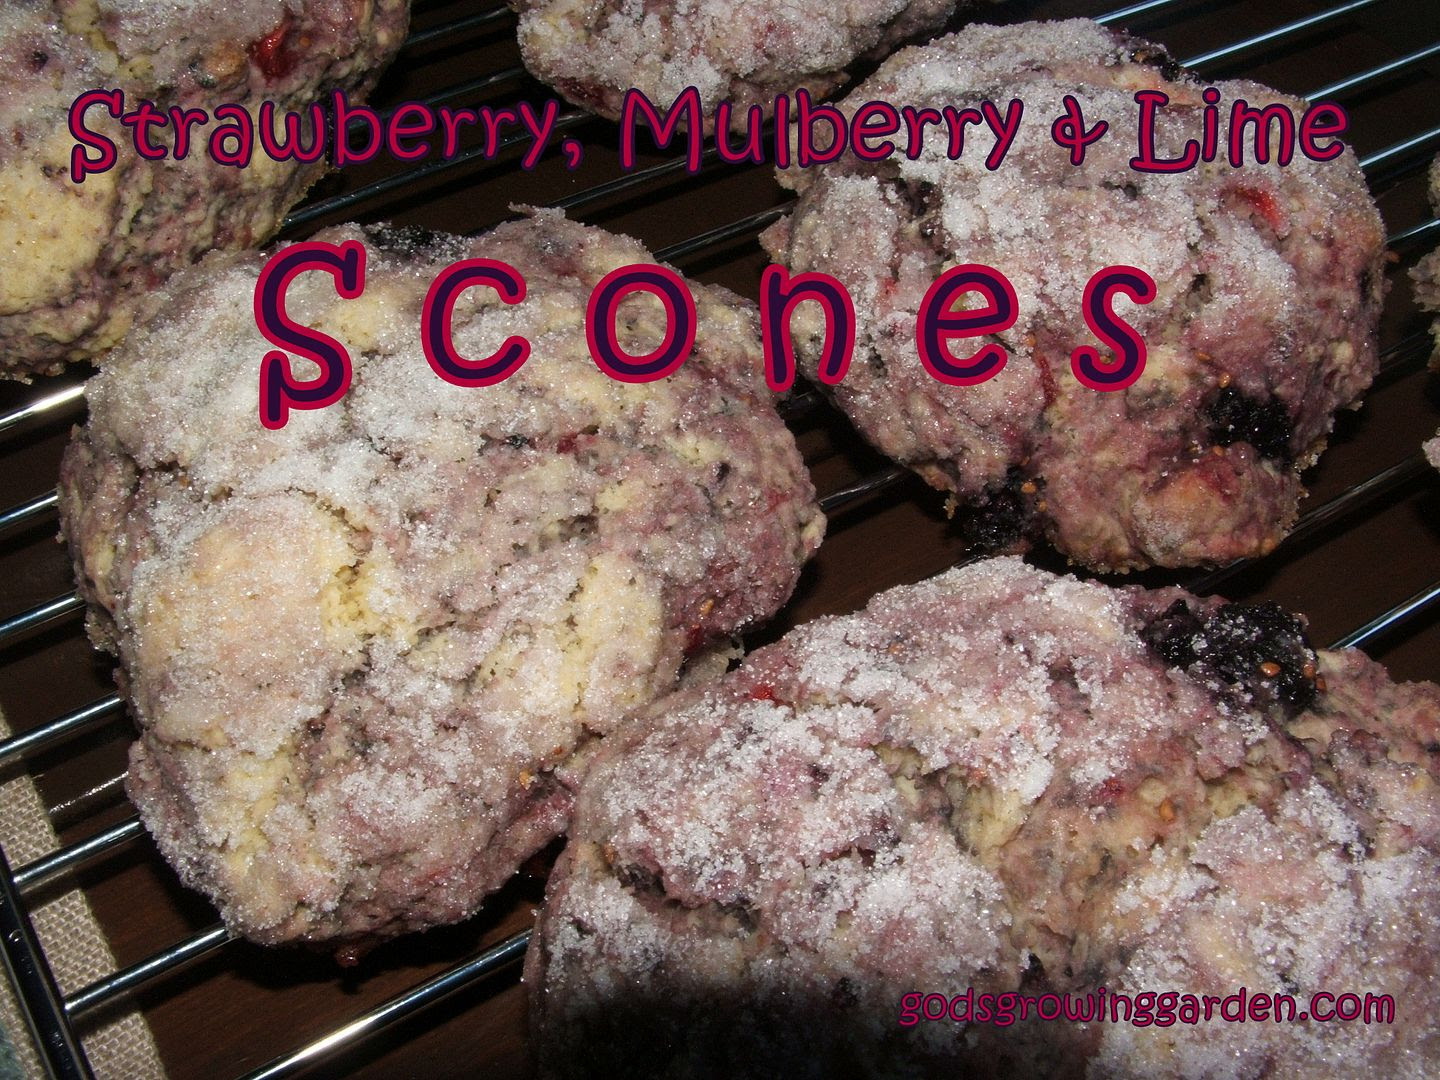 Mulberry Scones by Angie Ouellette-Tower for godsgrowinggarden.com photo 010_zpsb02e97b1.jpg